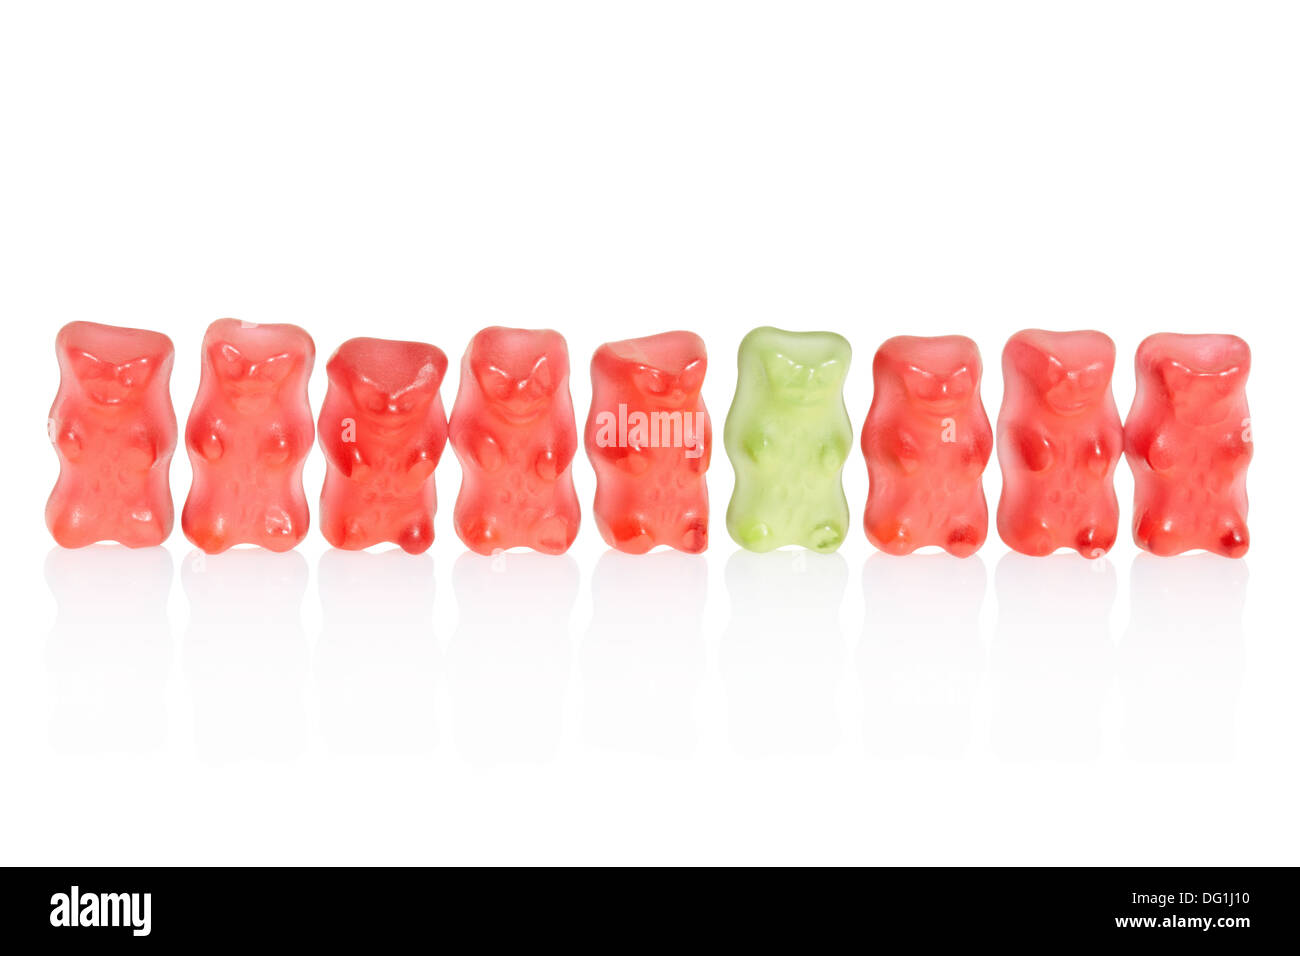 Gummy bears candies row, difference concept - Stock Image